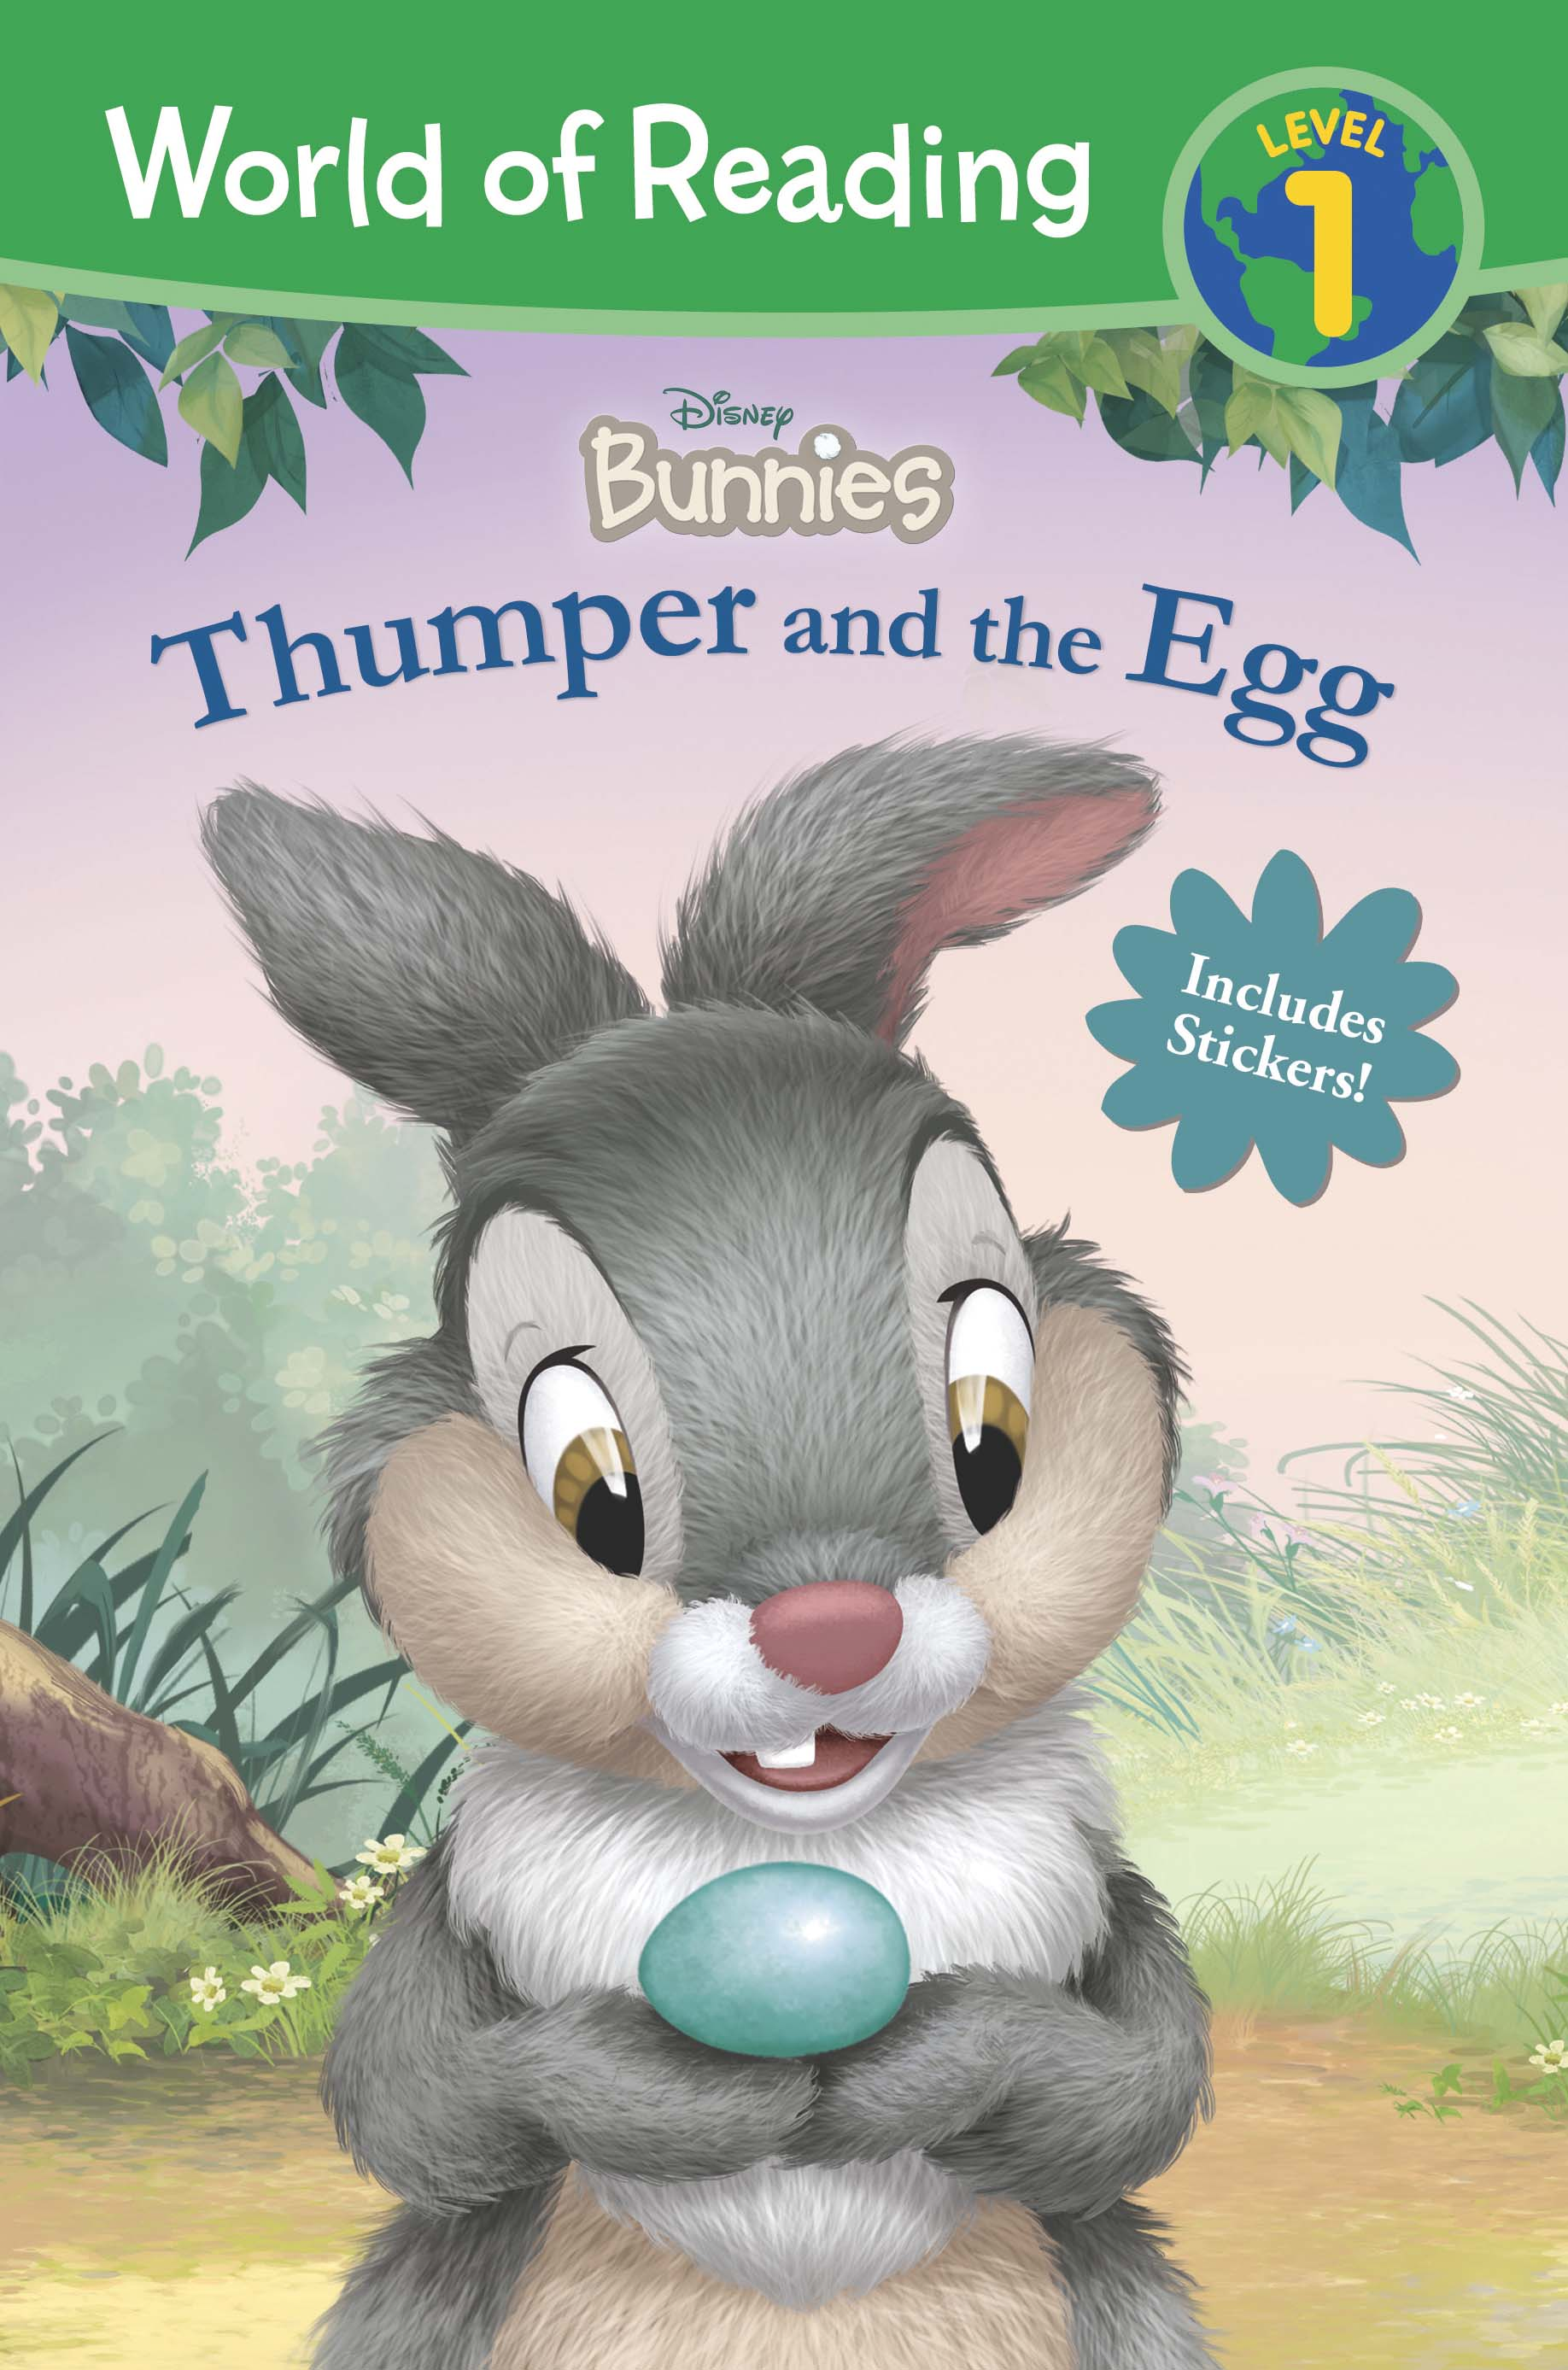 Thumper and the Egg